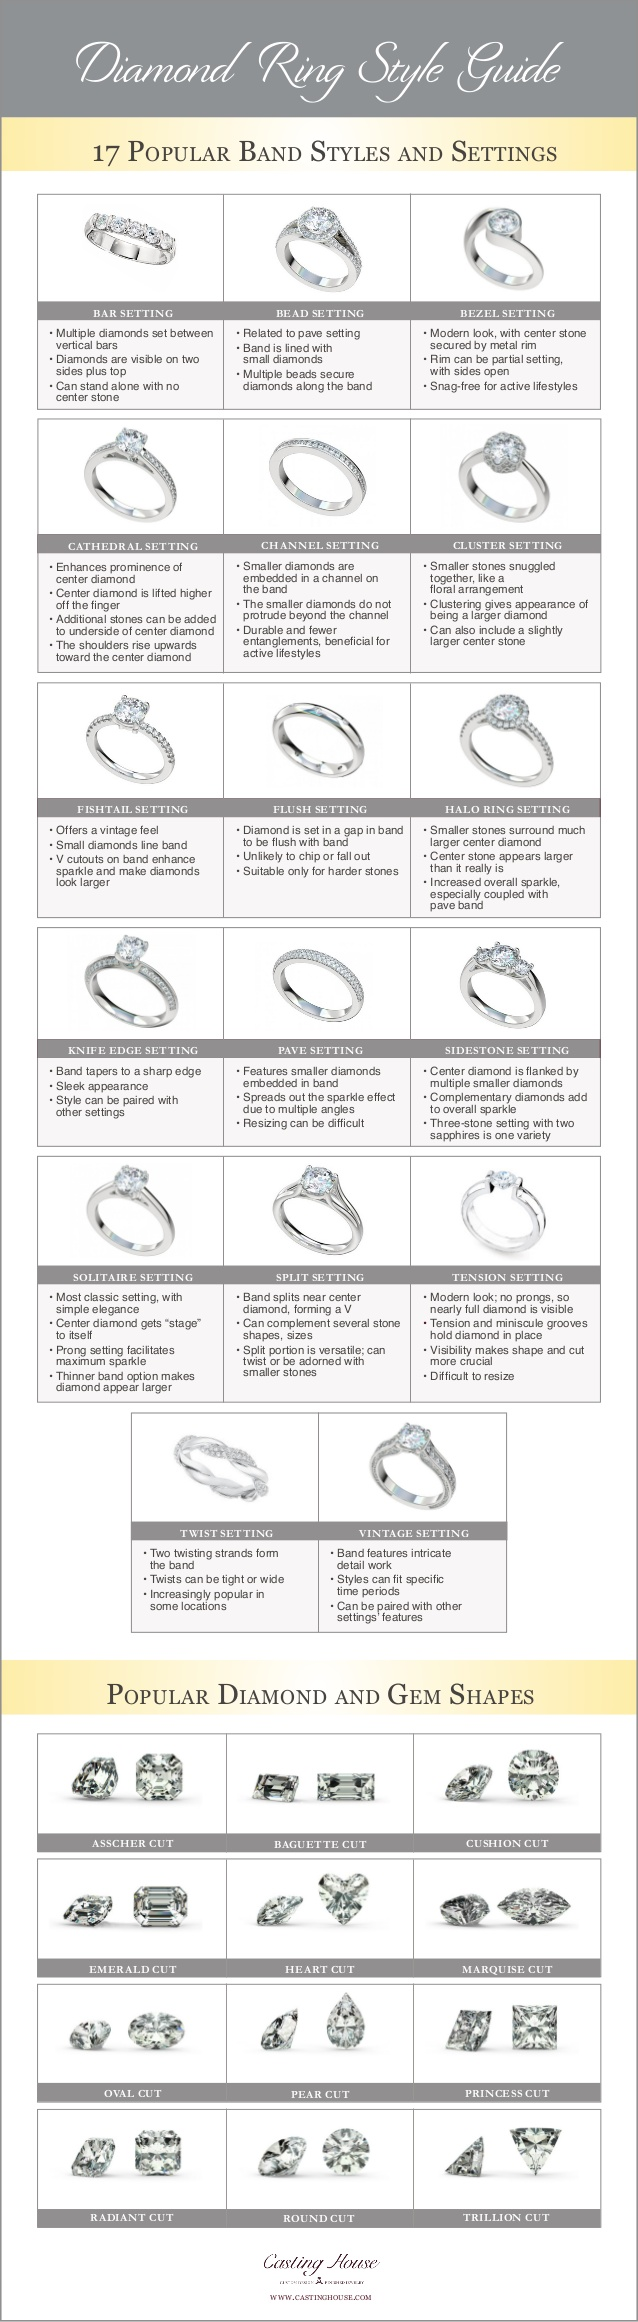 While the more unusual cuts of diamonds have been gathering momentum - While The More Unusual Cuts Of Diamonds Have Been Gathering Momentum 78